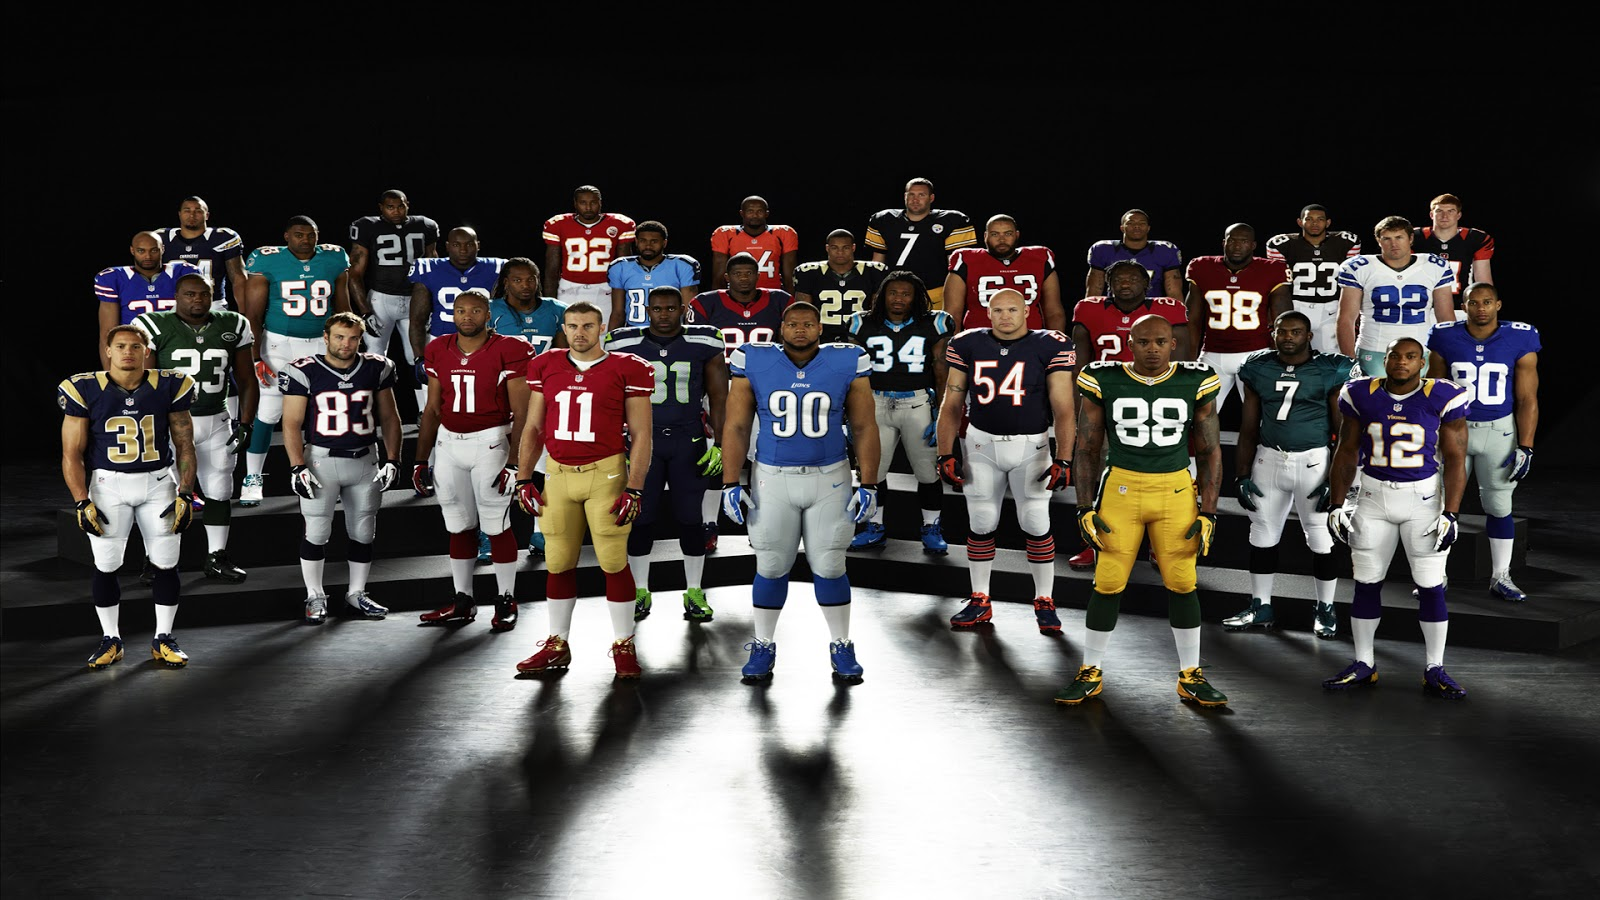 Nfl Football Players Wallpapers Images amp Pictures   Becuo 1600x900